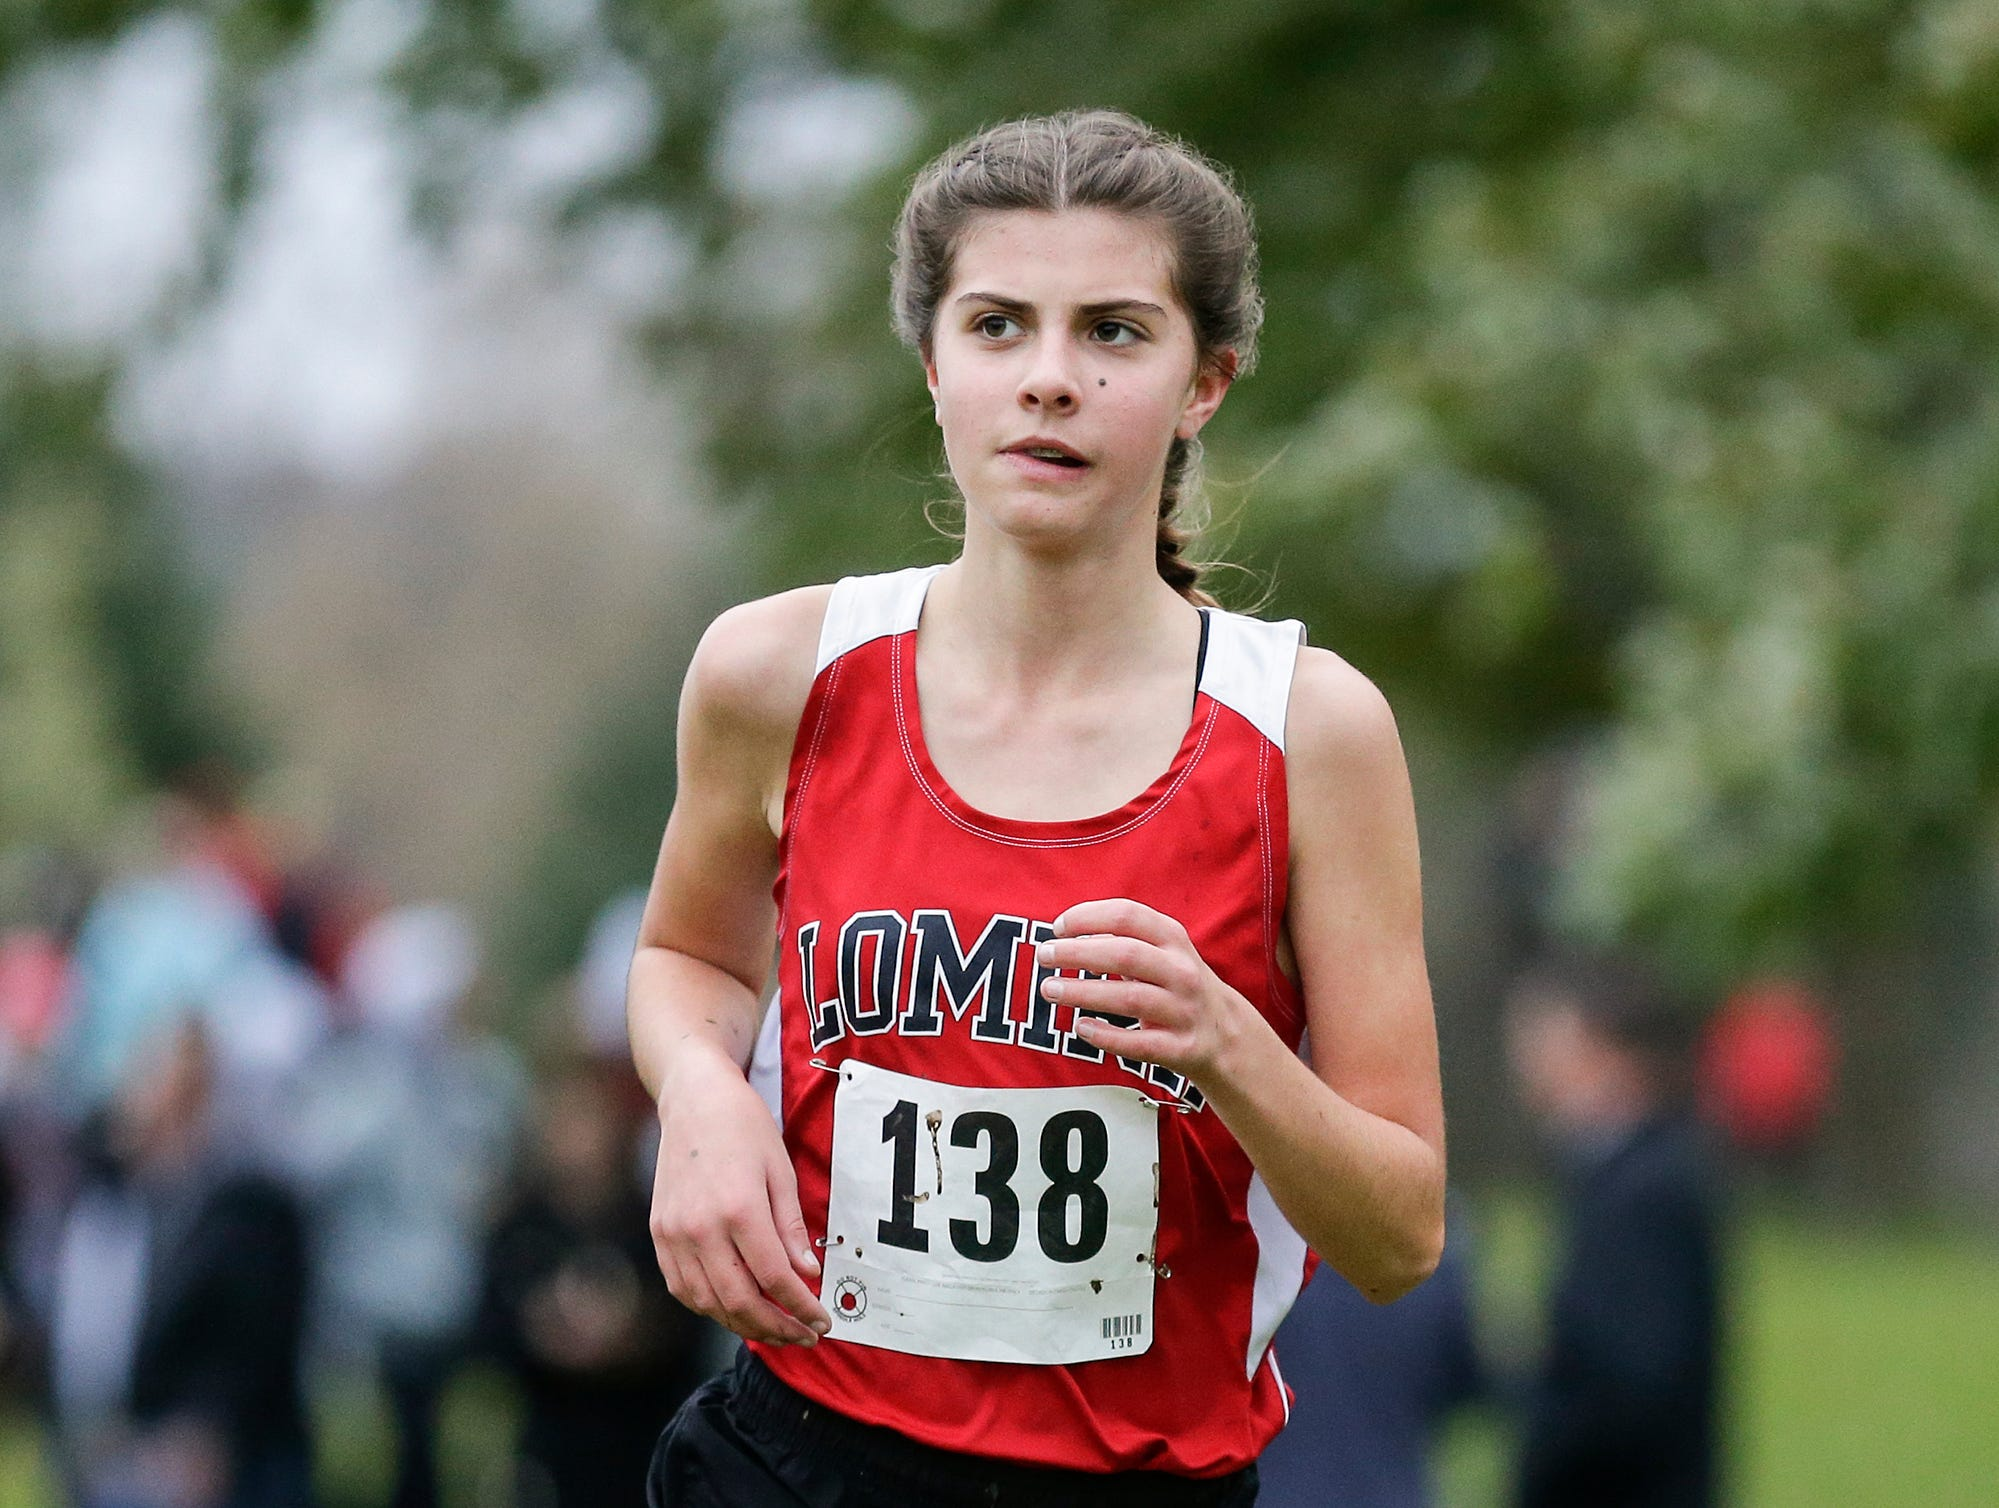 Lomira High School's Lydia Thomas runs in the WIAA Division two Mayville sectional cross country meet at the Mayville golf course Friday, October 19, 2018. Doug Raflik/USA TODAY NETWORK-Wisconsin